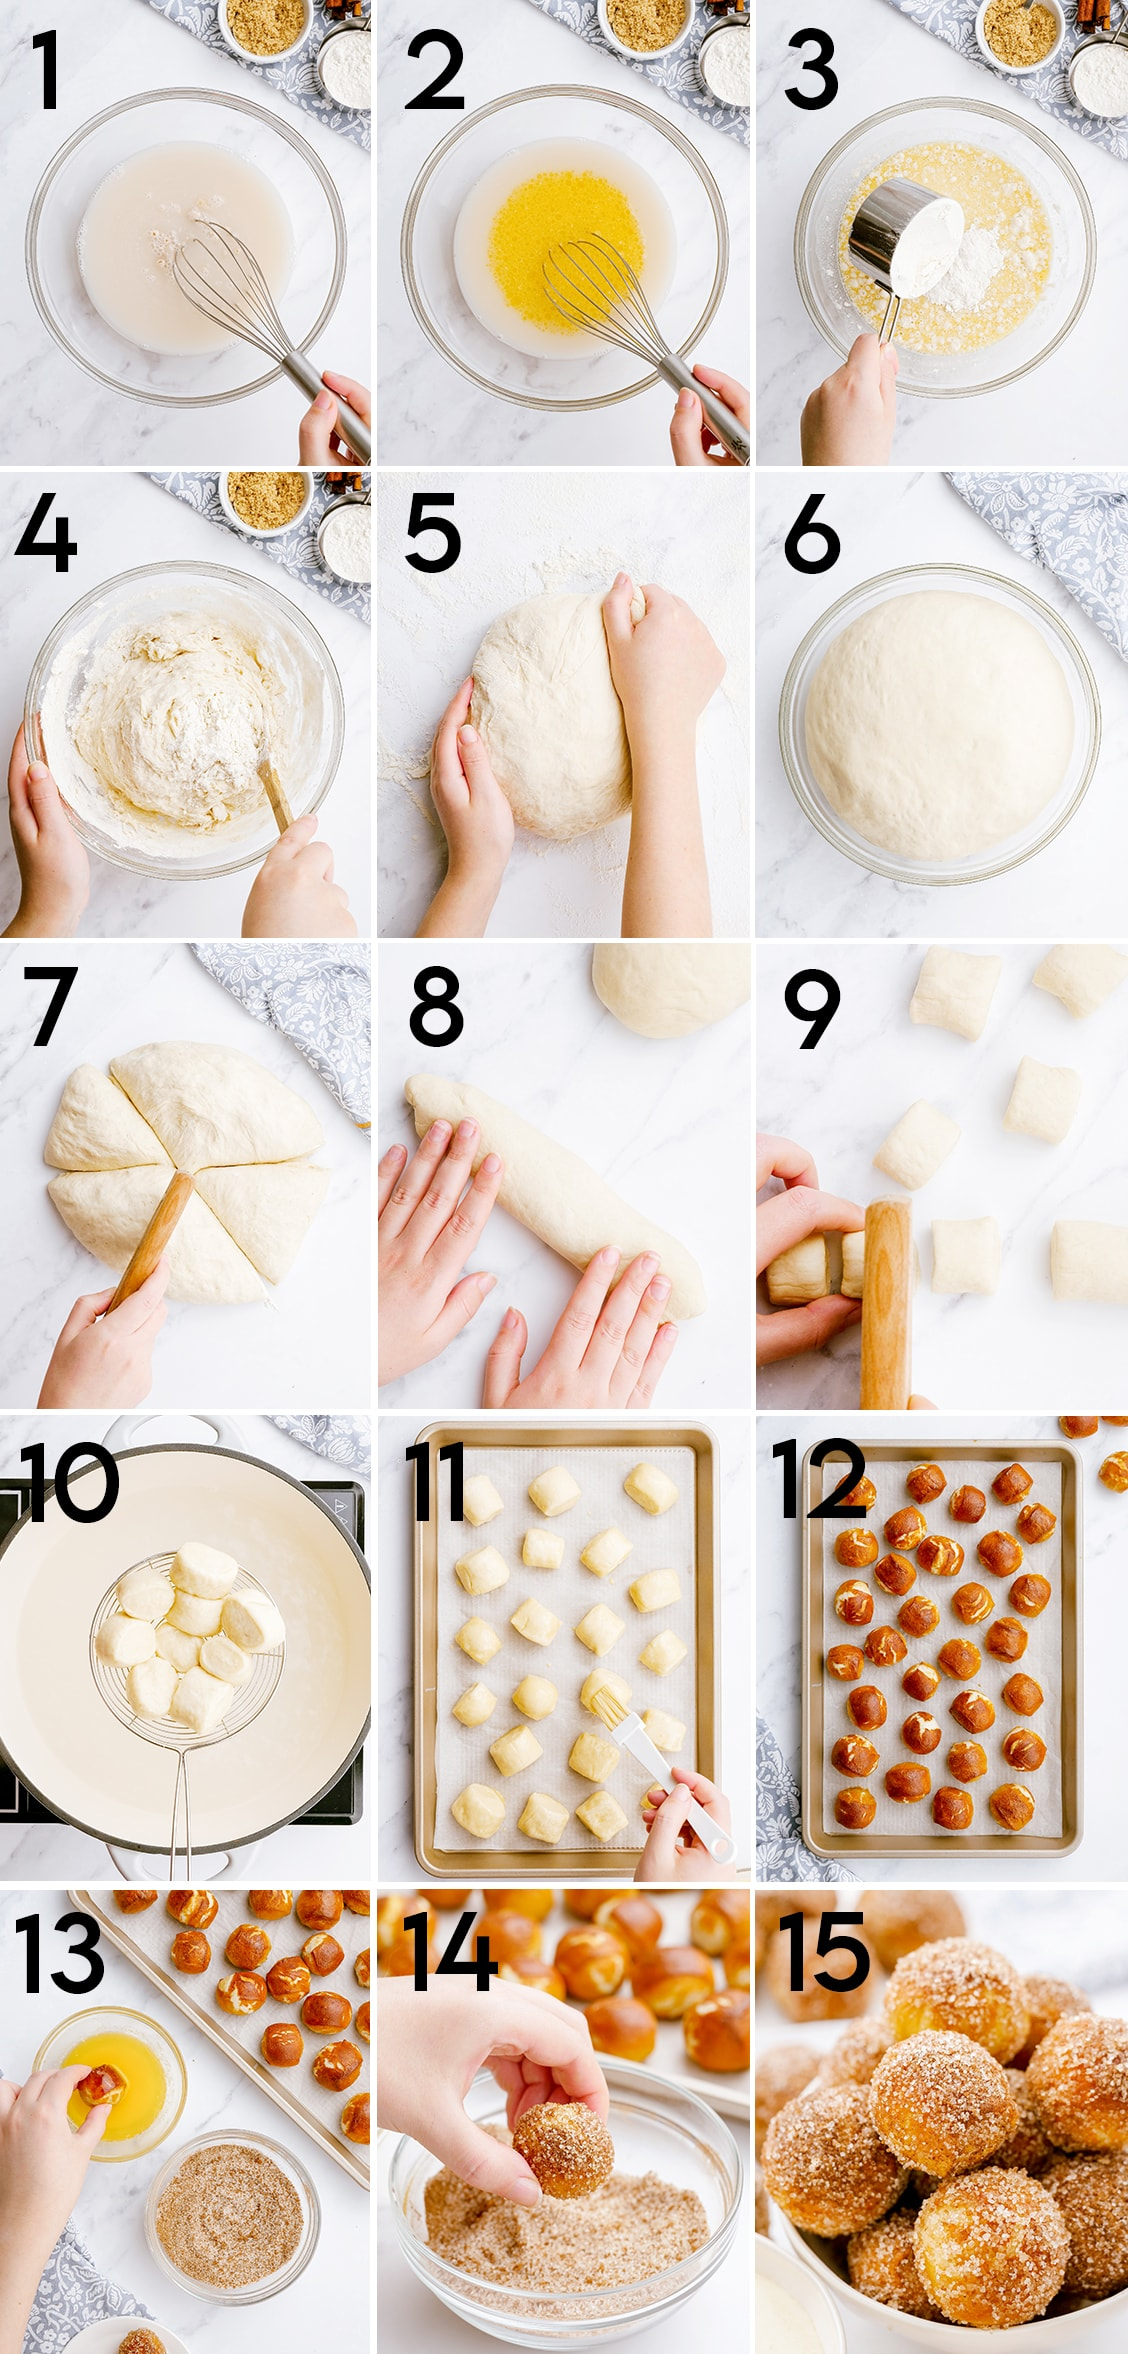 A collage of 15 step by step photos showing how to make cinnamon sugar soft pretzel bites. They are numbered to go along with the steps in the blog text.